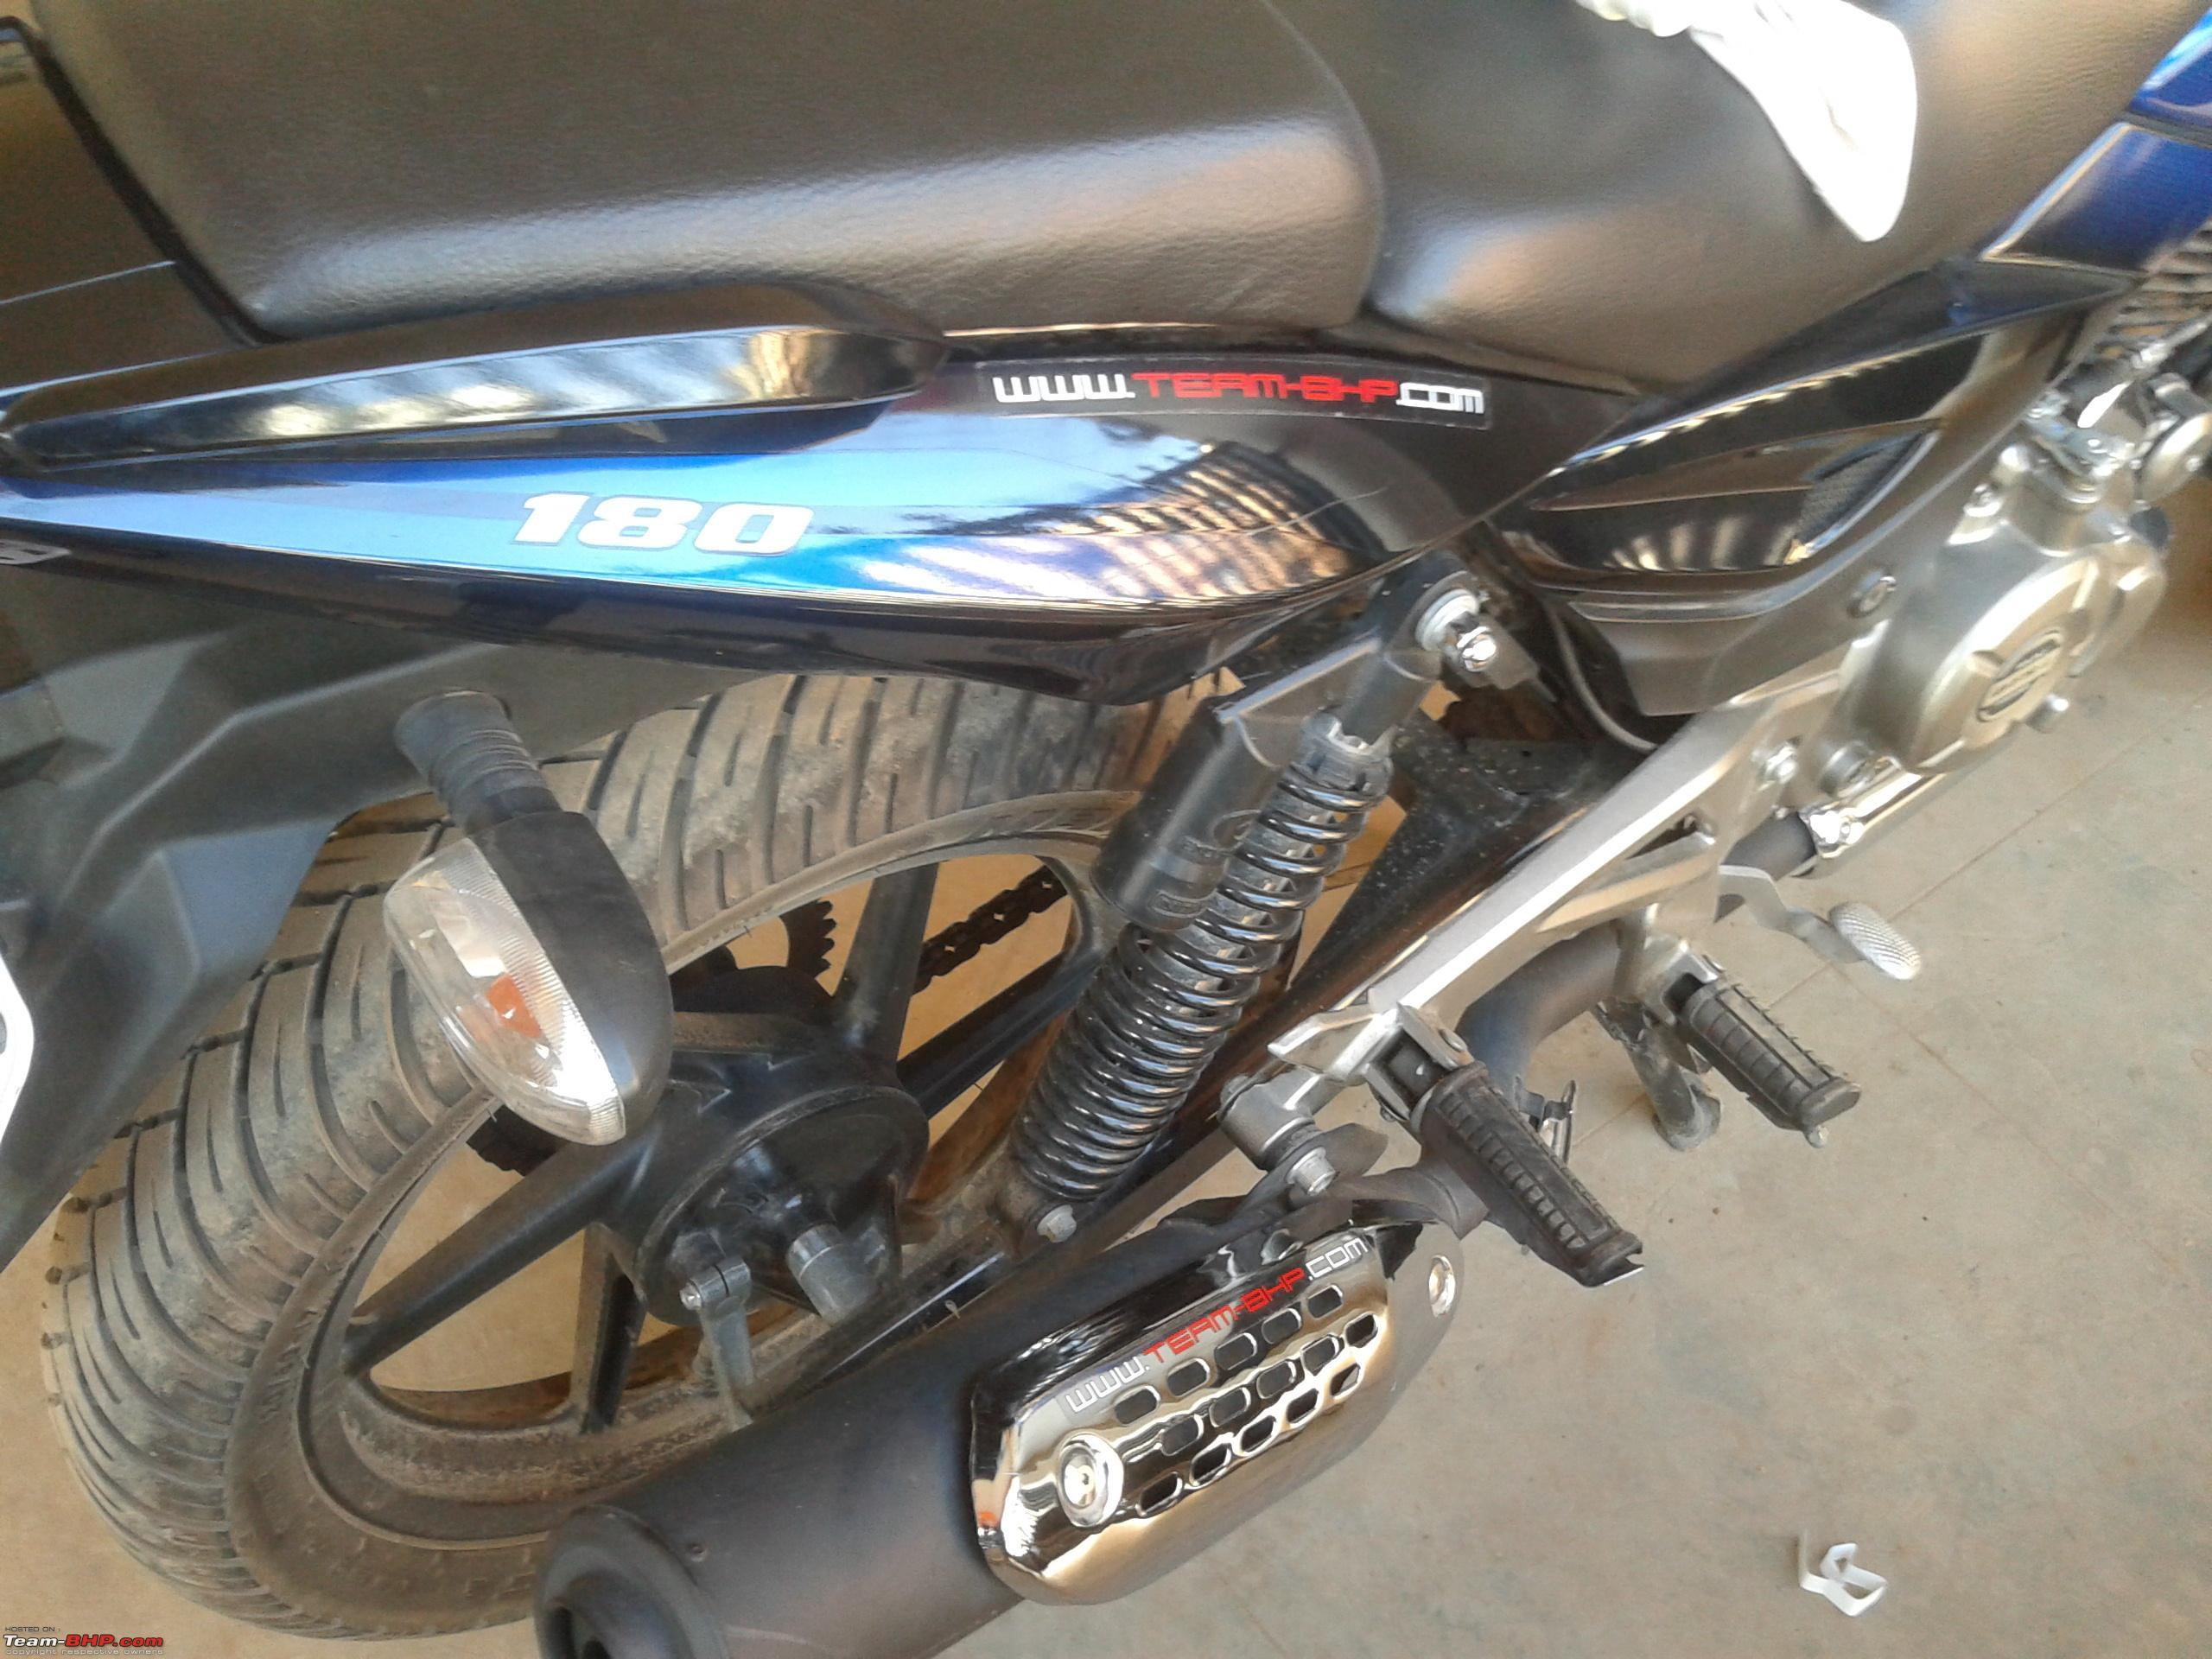 Bike stickering designs for pulsar 150 - Bajaj Pulsar 180 Long Term Ownership Report Edit Sold 20121222